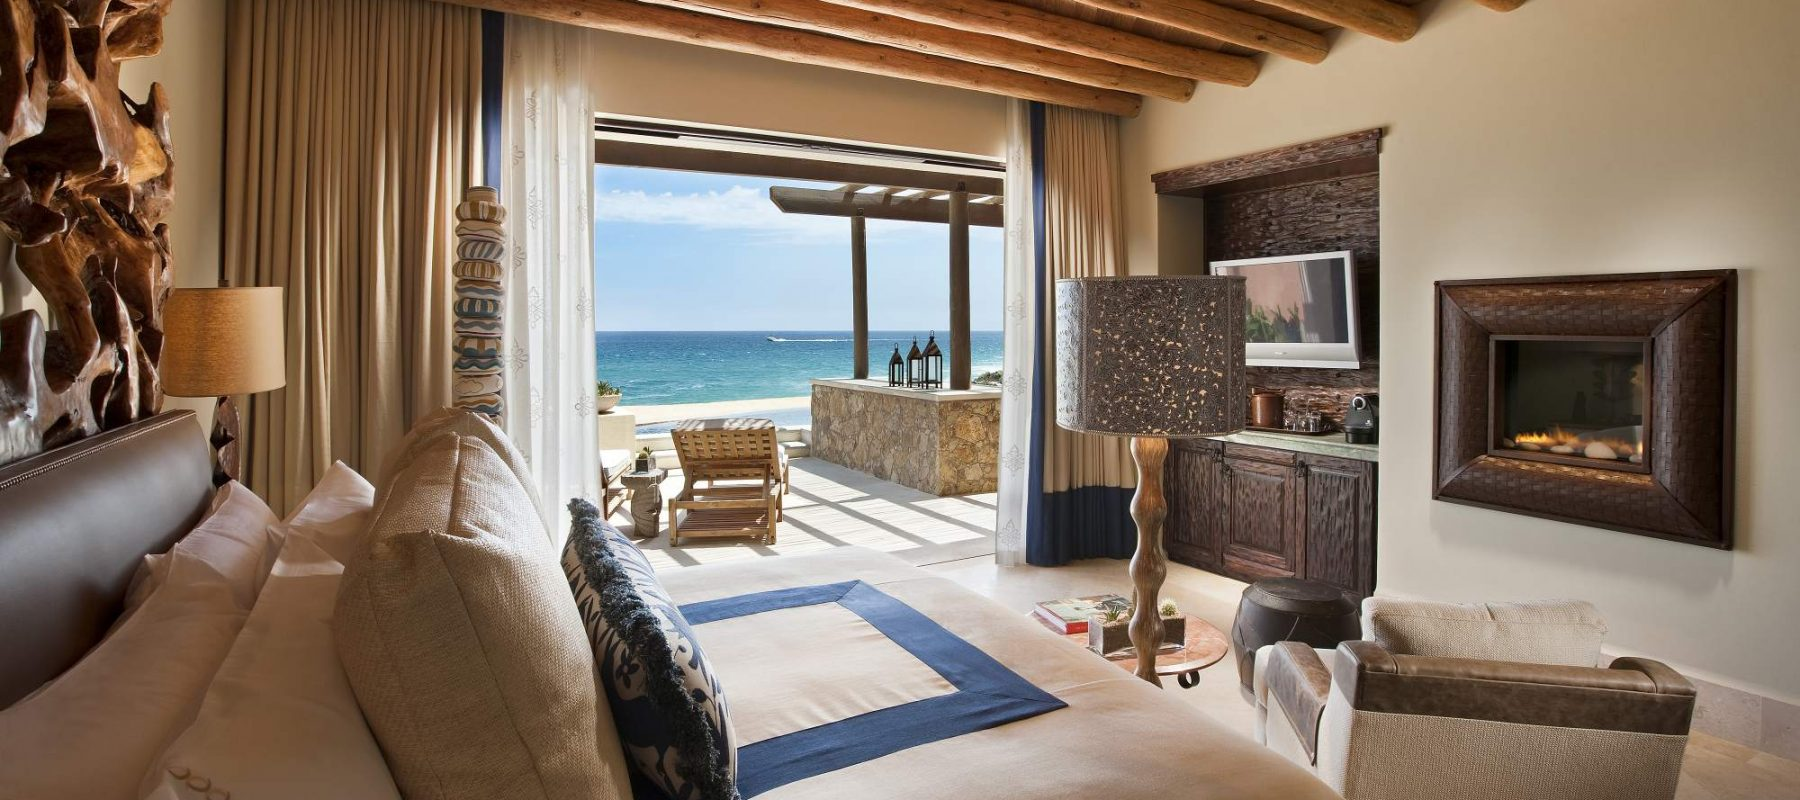 Pedregal Suite Bedroom at The Resort at Pedregal